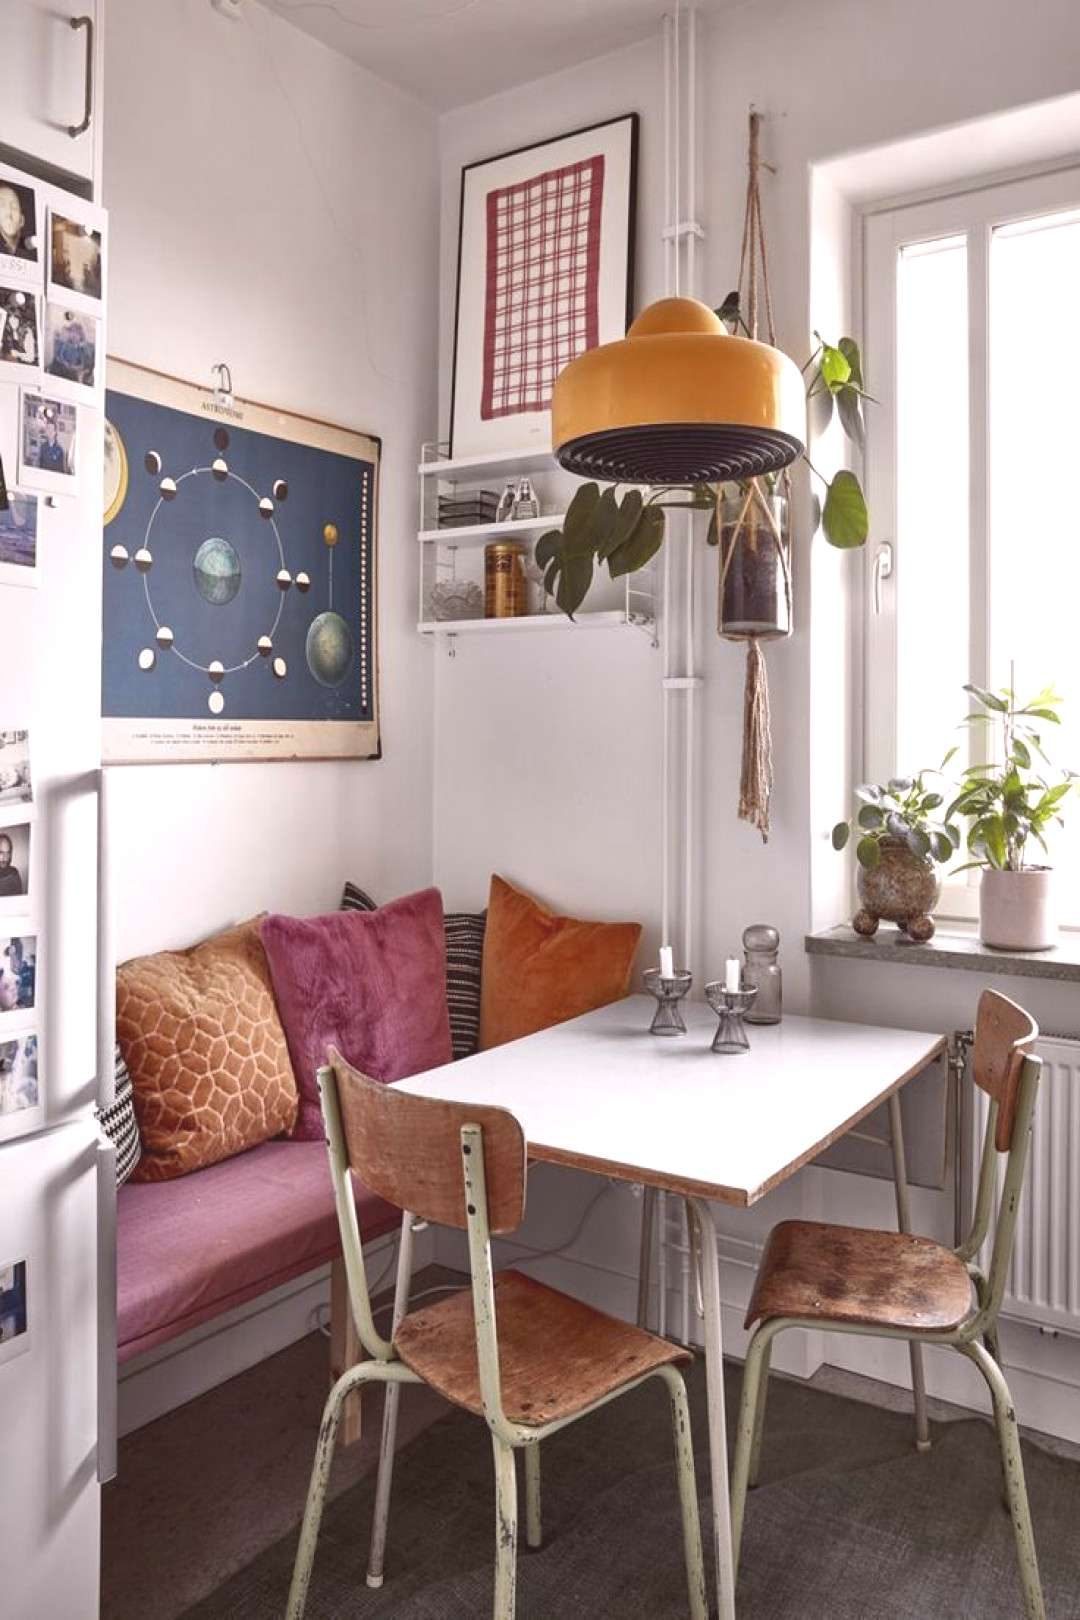 Cozy Textures In A Vintage Apartment in Stockholm | Vintage apartment, Retro apartment, Retro home